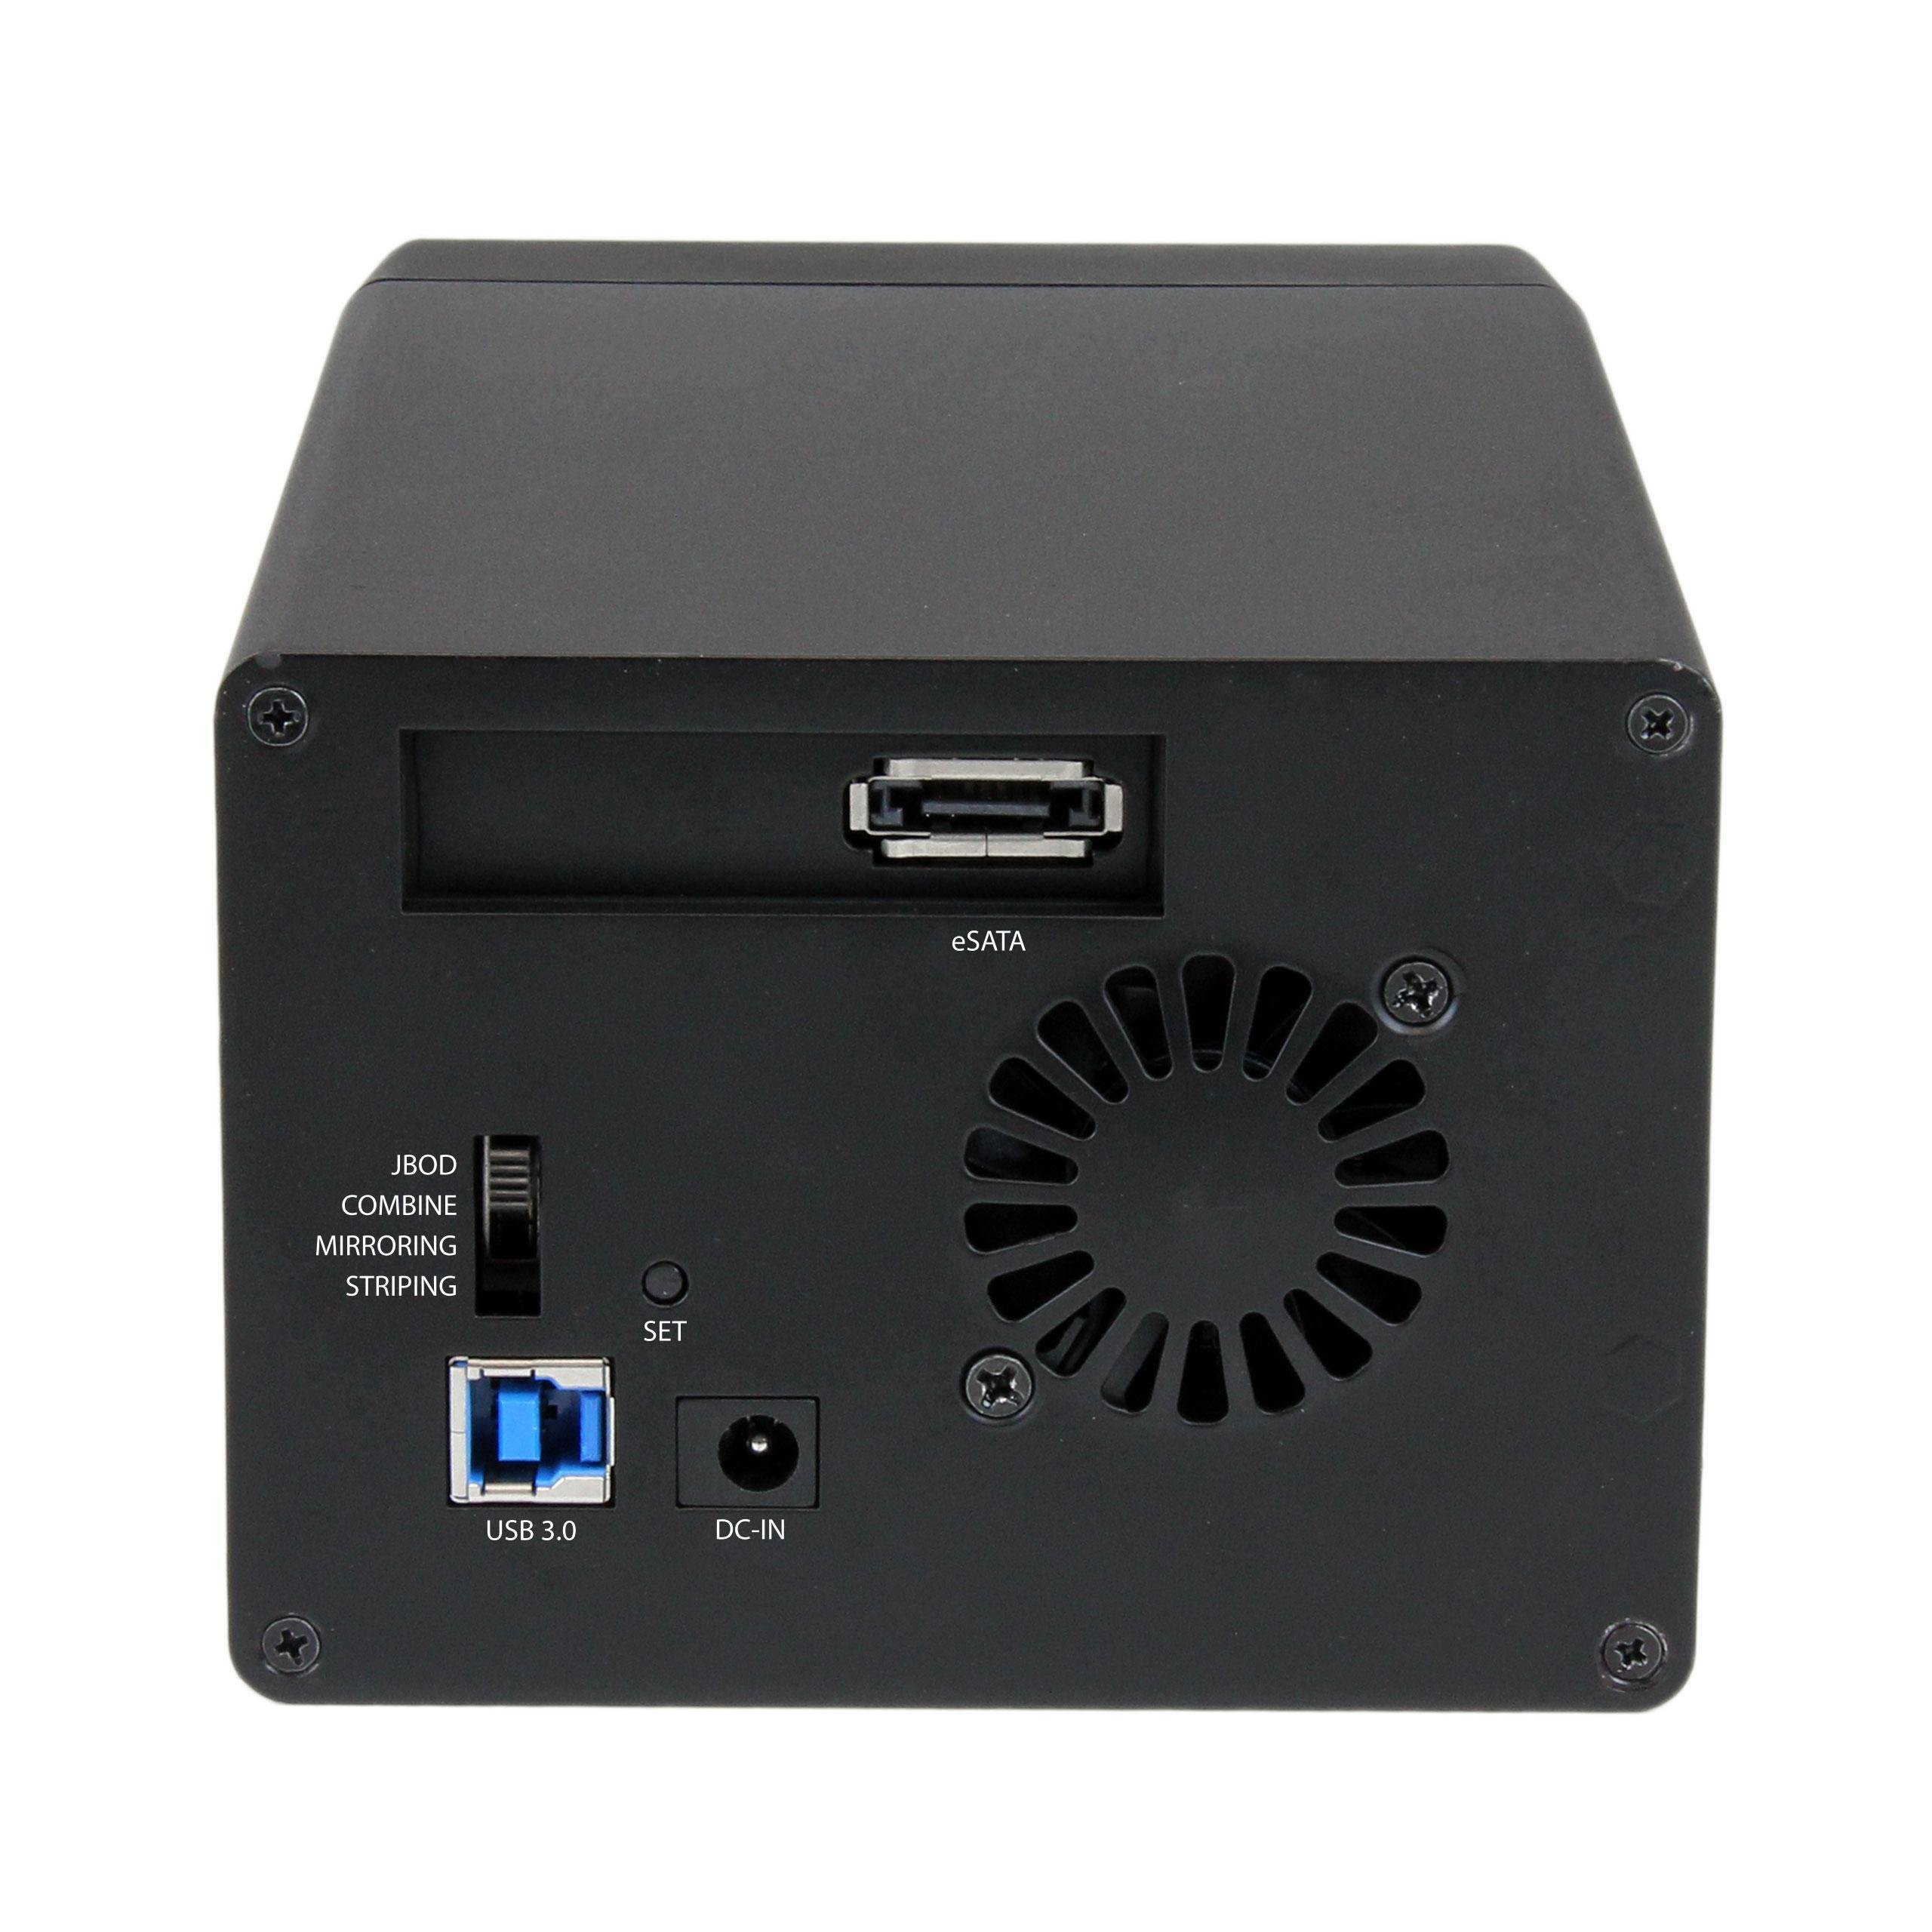 StarTech.com USB 3.0 eSATA Dual 3.5 SATA III Hard Drive RAID Enclosure w/UASP and Fan - Black - Multi Bay 3.5